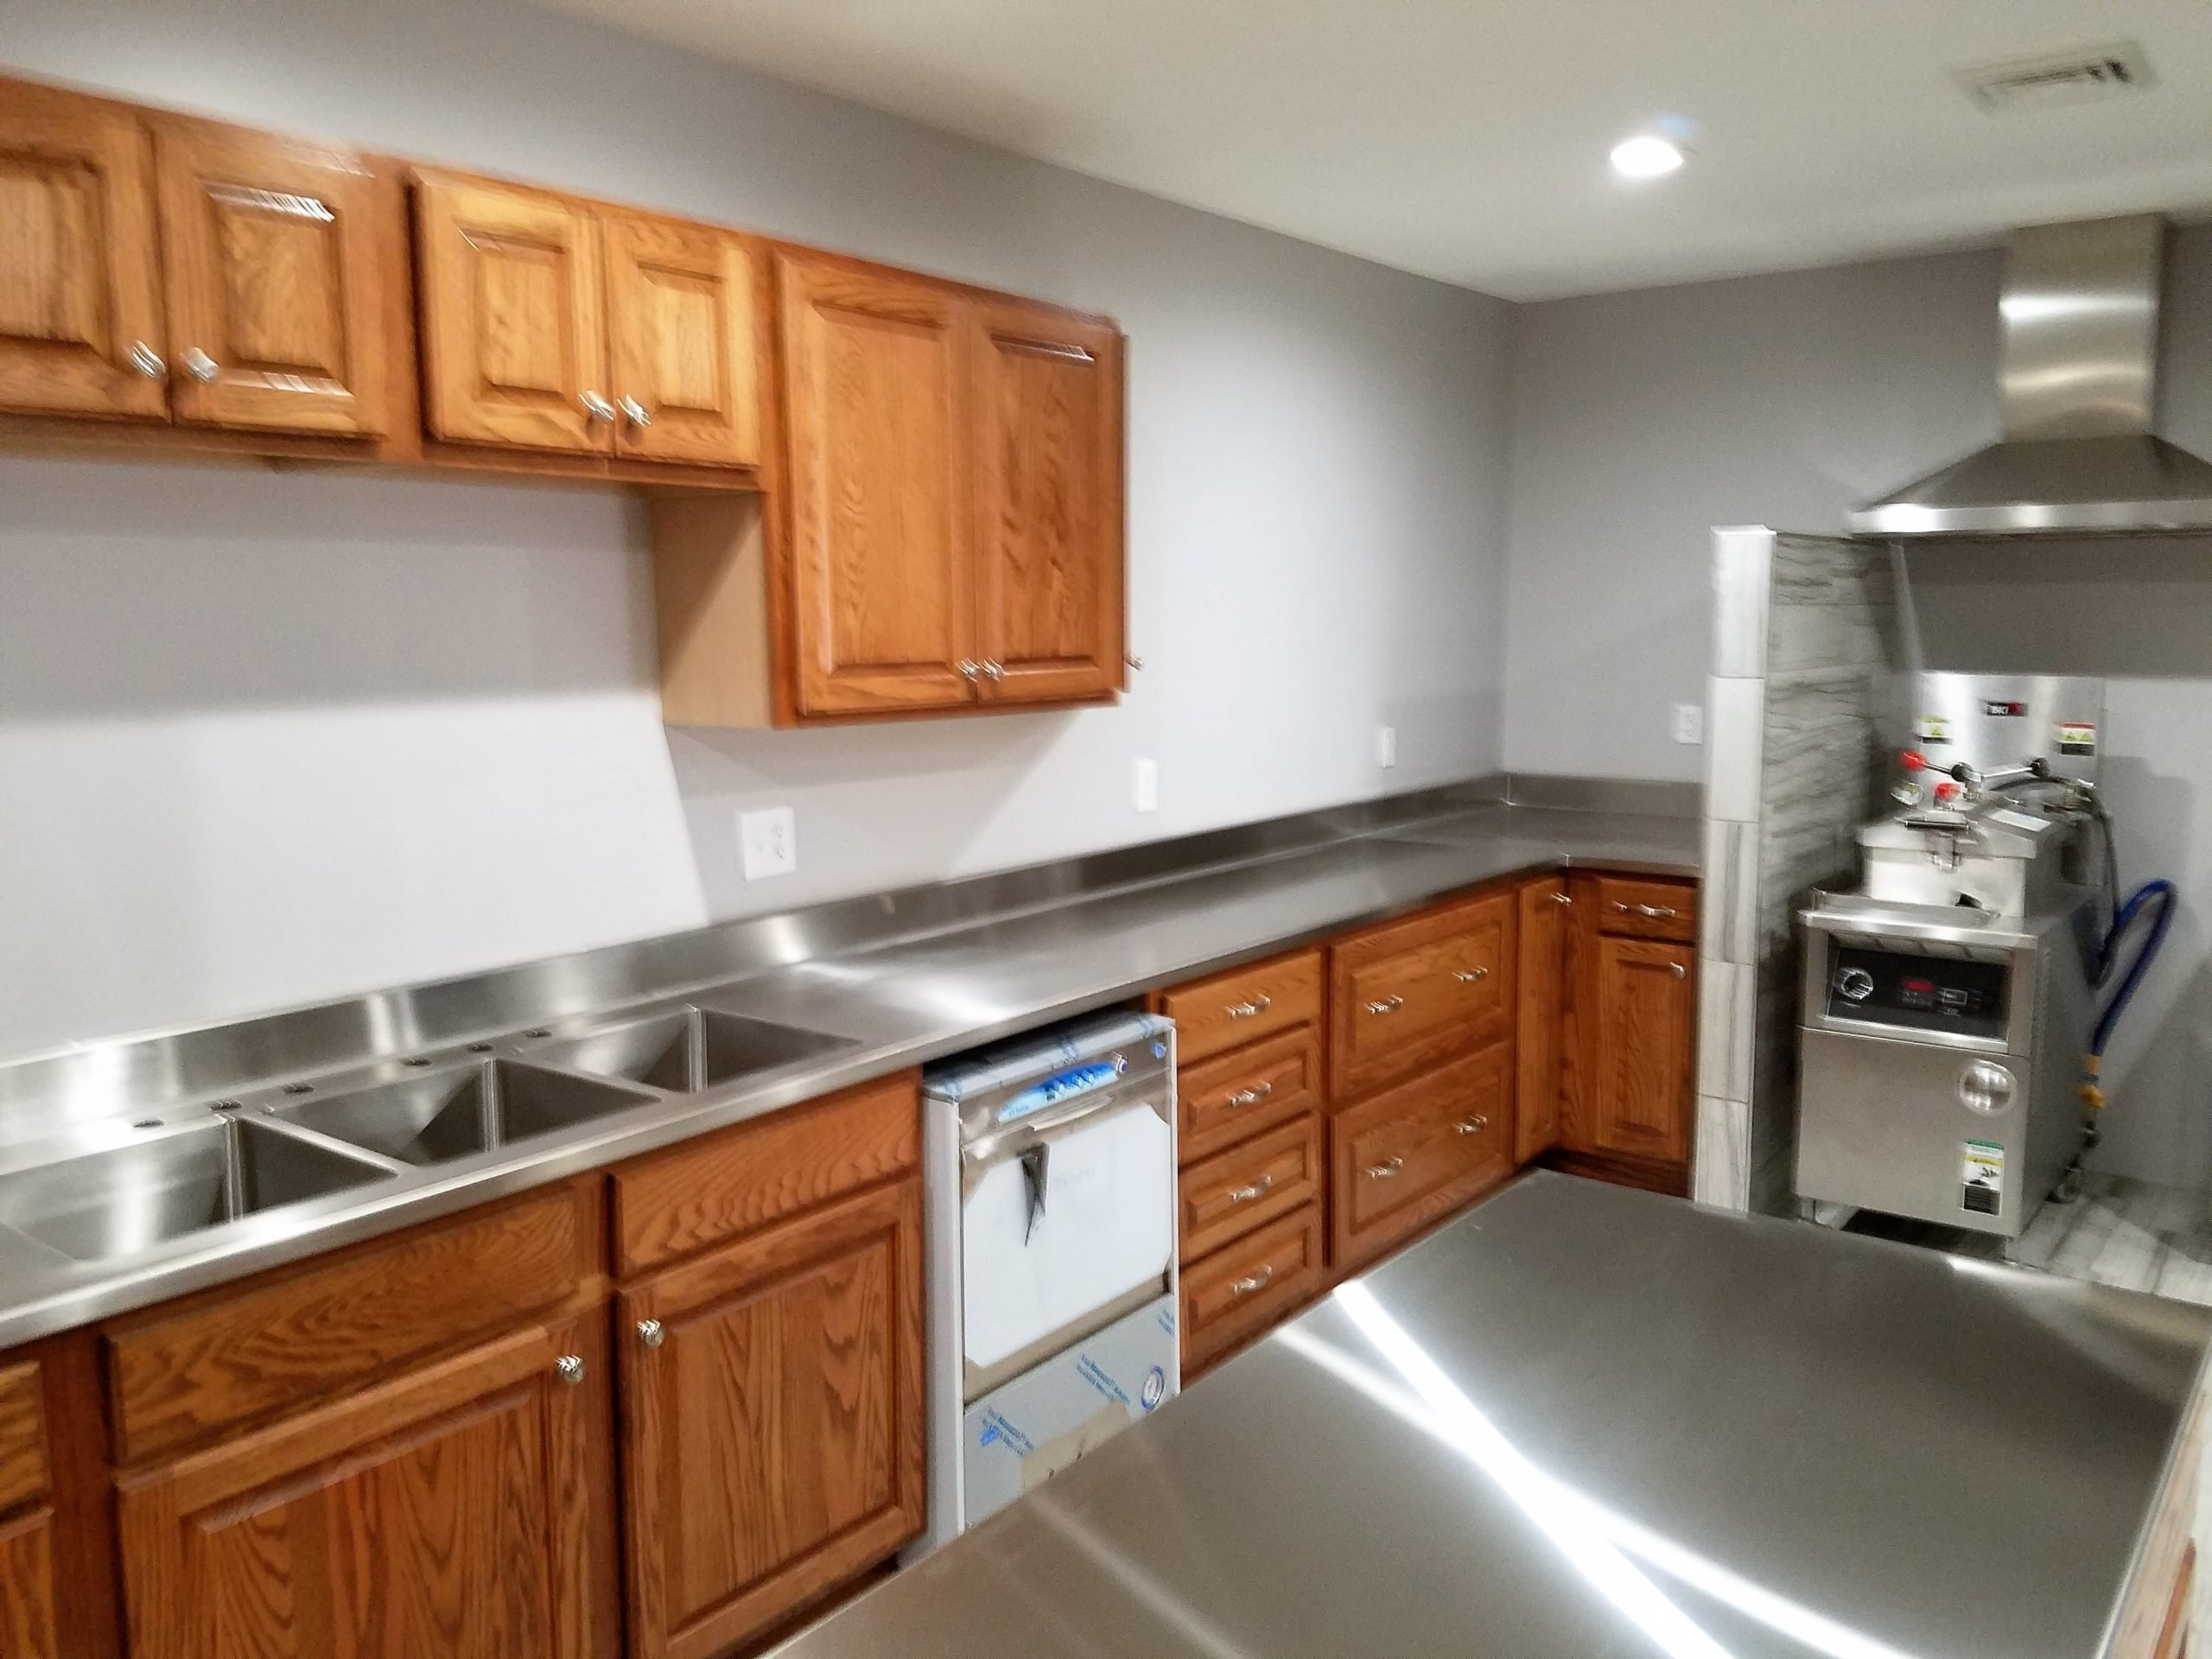 Custom Stainless Steel Top on Wood Cabinets